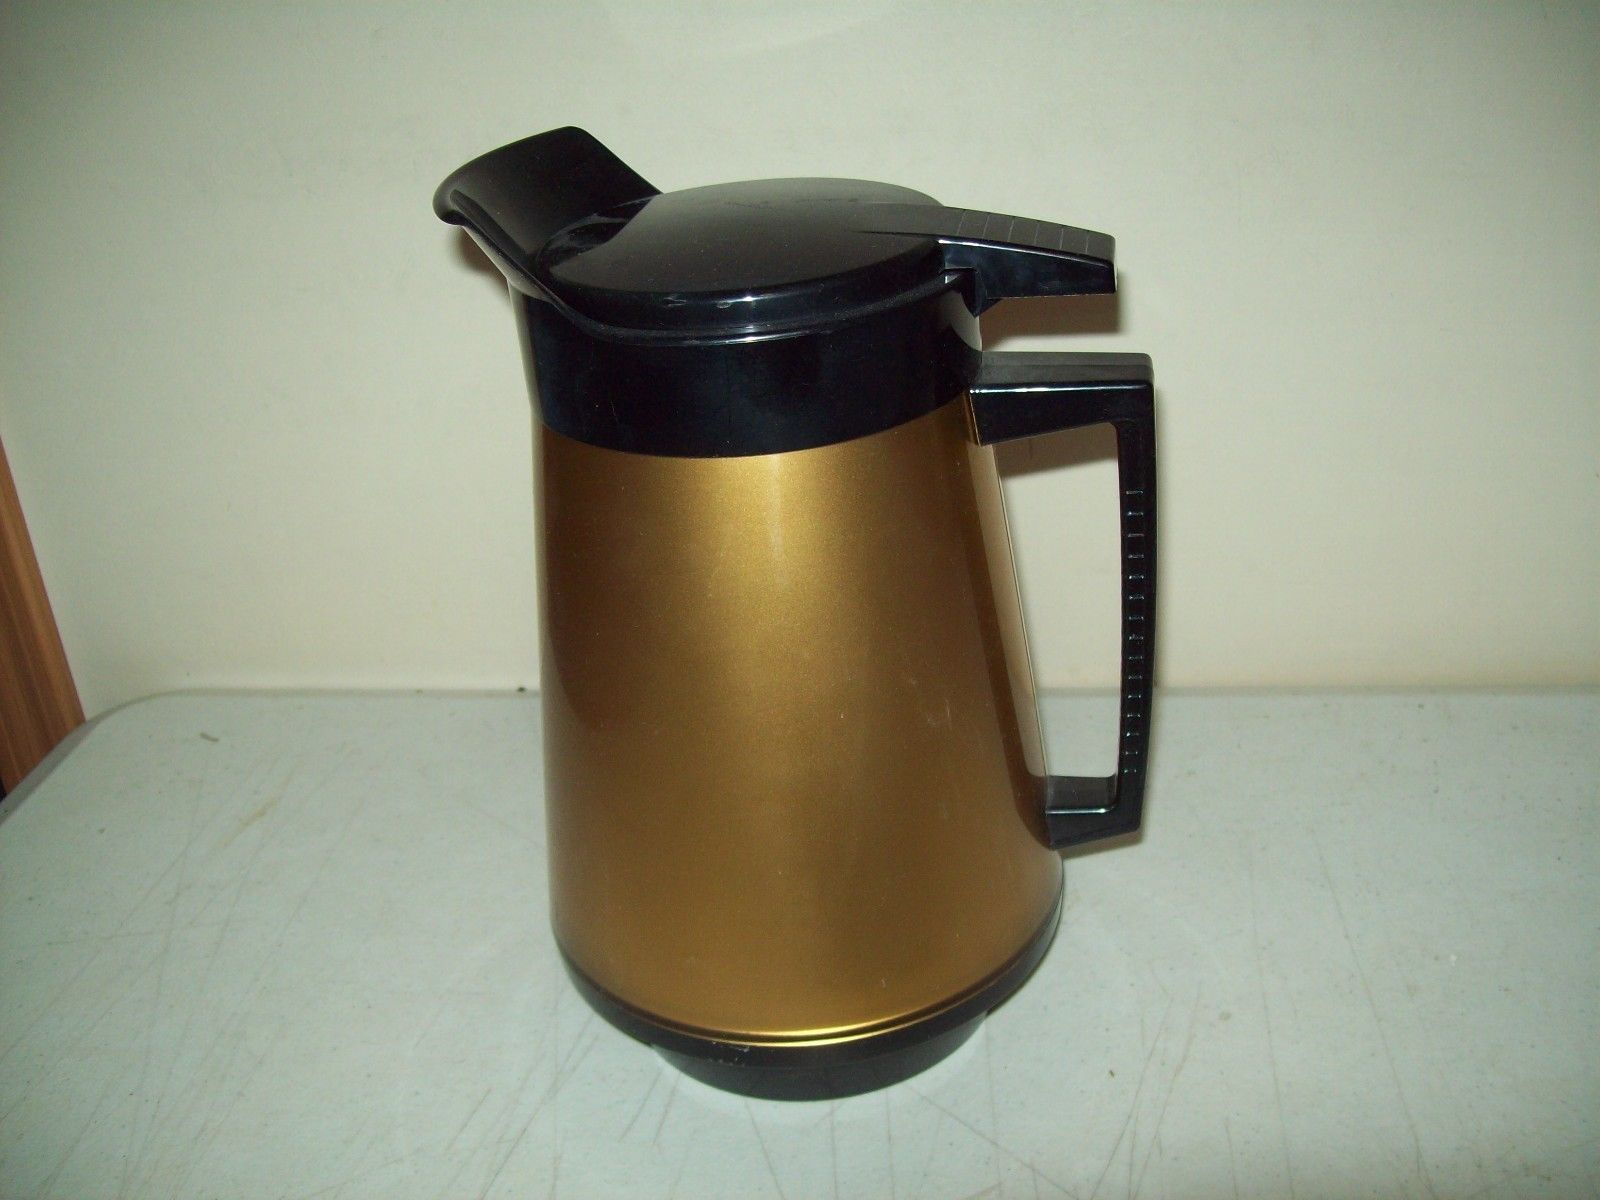 Thermo-Serv double wall insulated Pitcher American made West Bend 2 quart